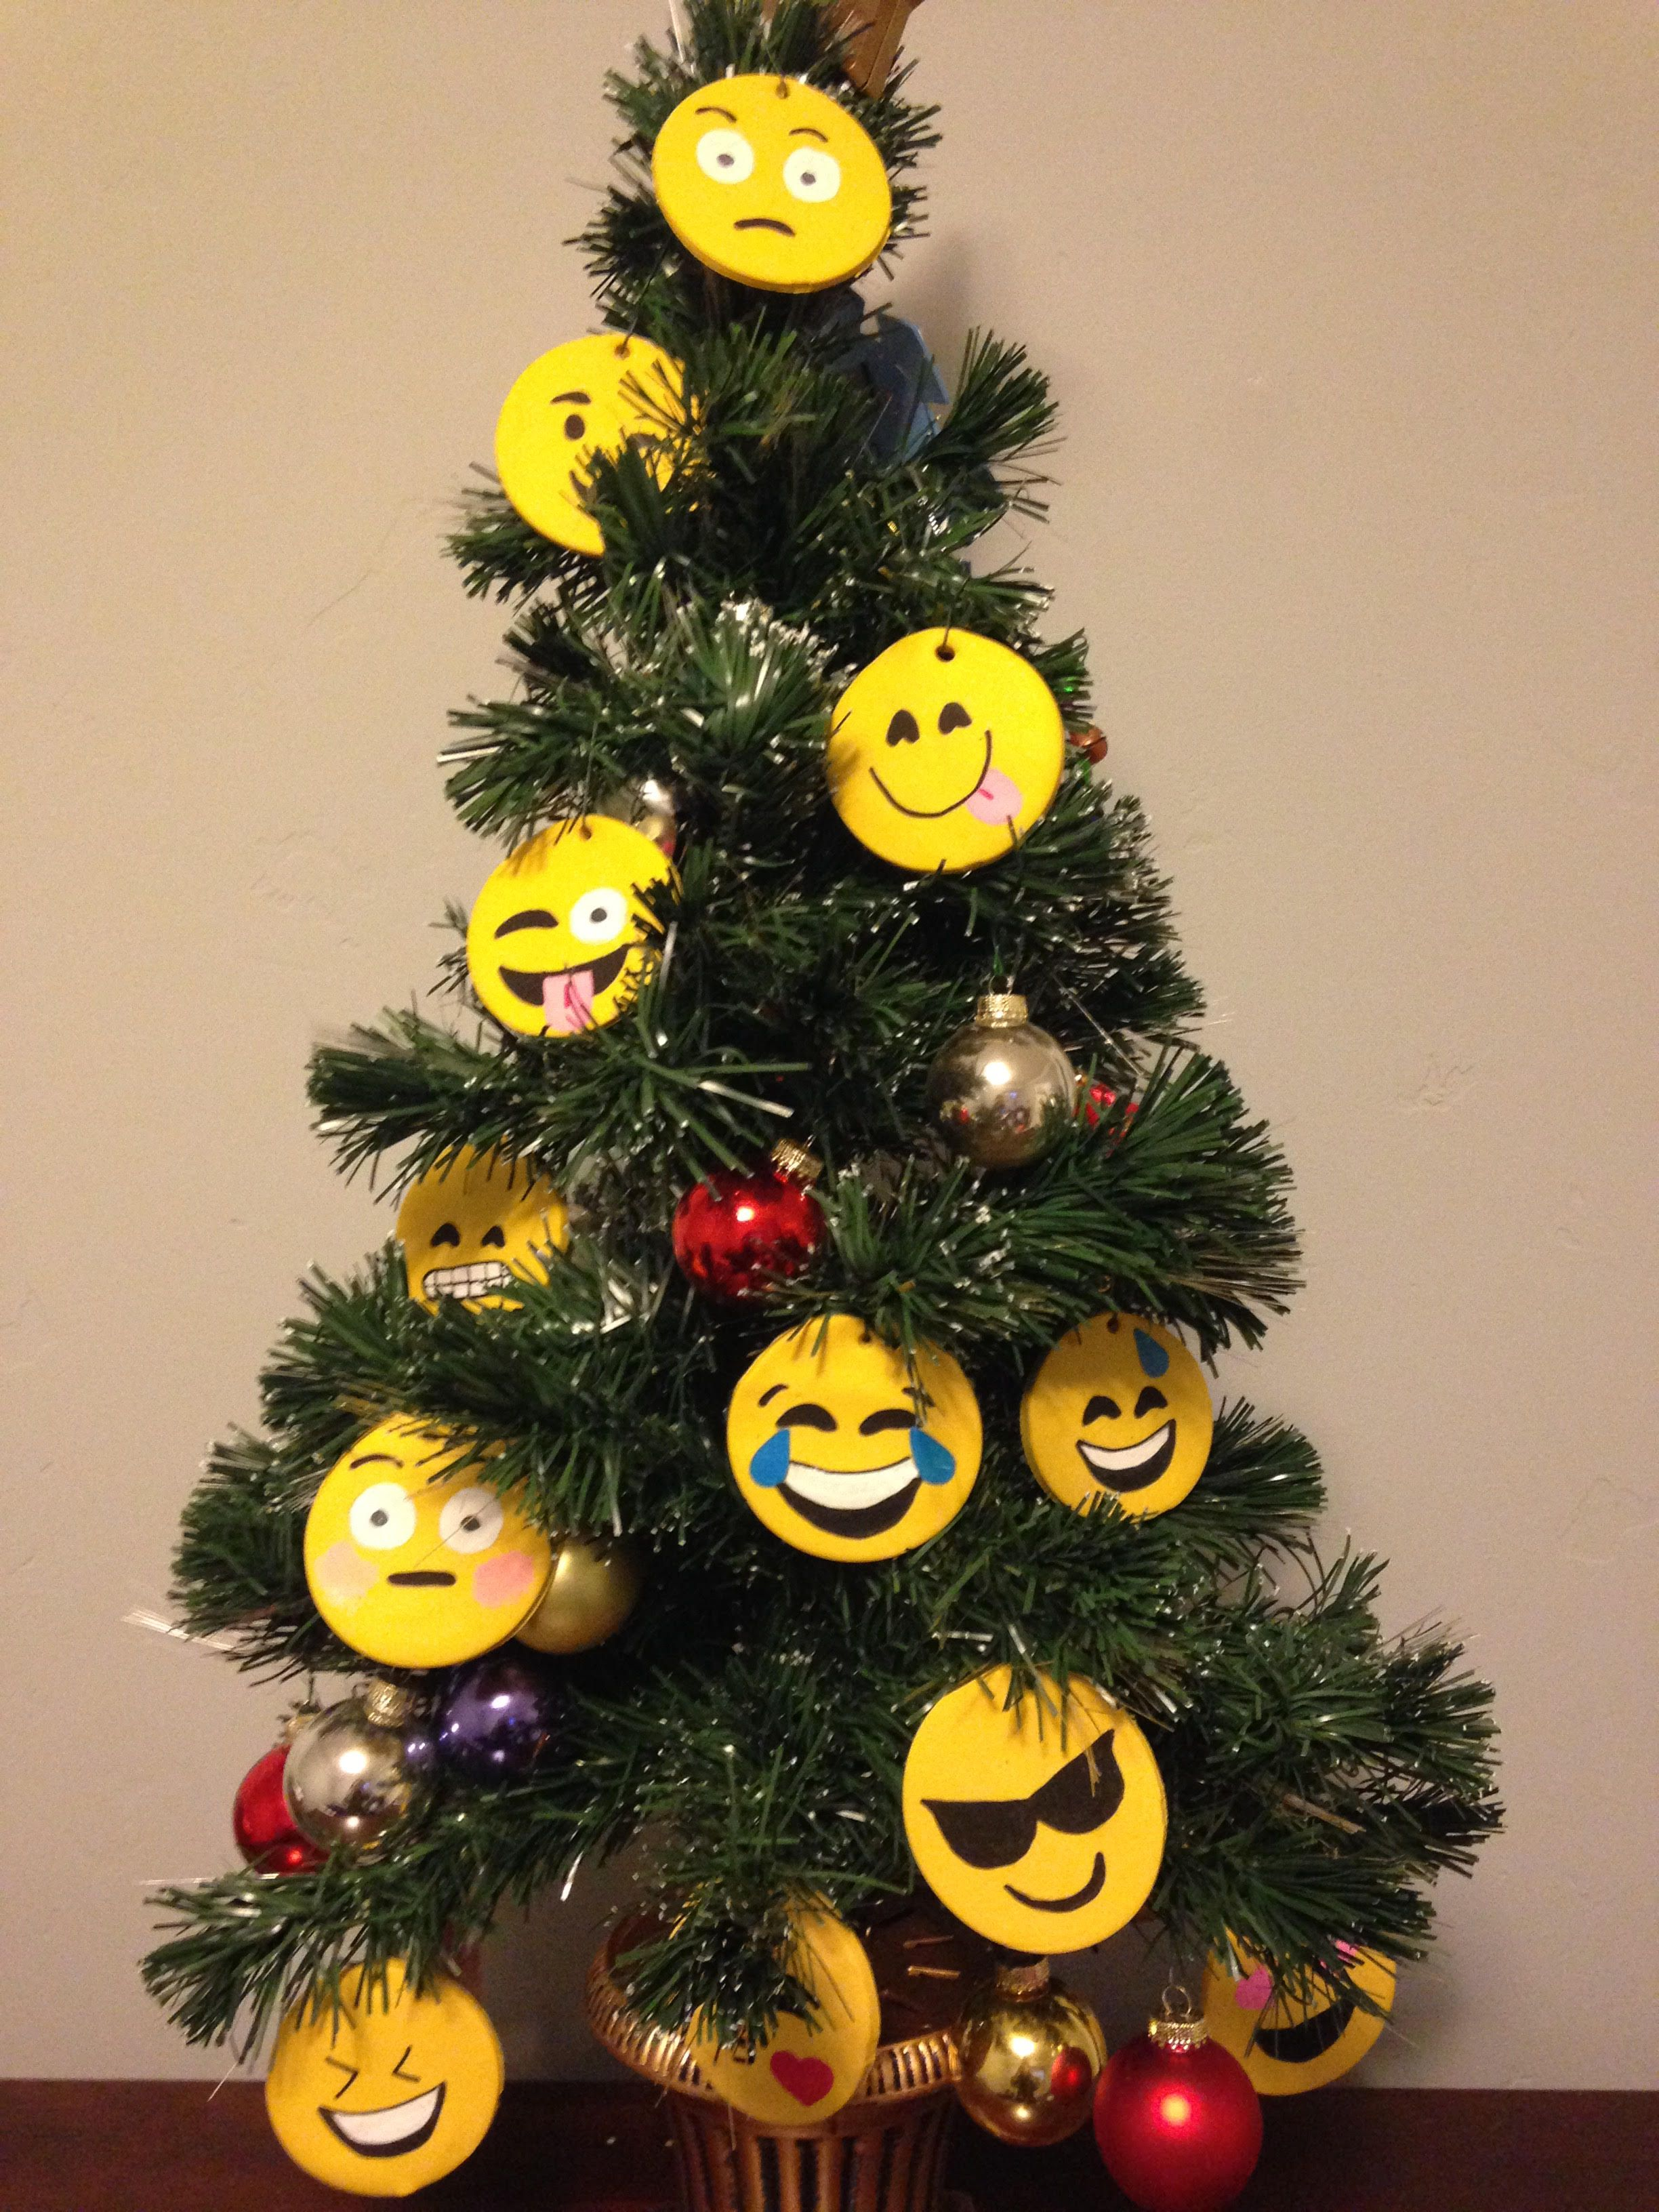 Fun Emoji Ornments What Mood Are You In Www Funkitch Com Ornaments Gift Toppers Clay Crafts